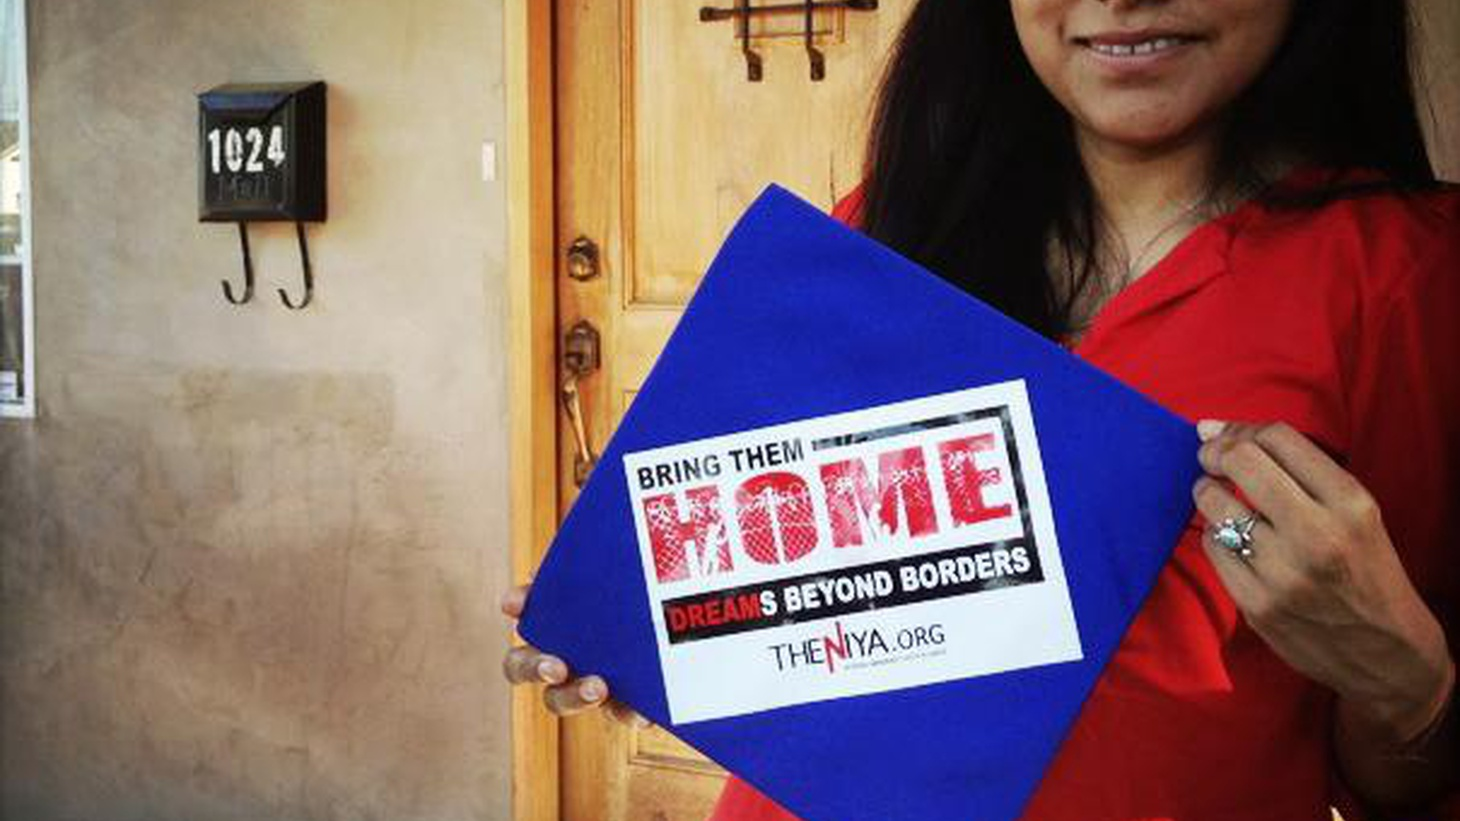 A group of immigration activists test US immigration laws.